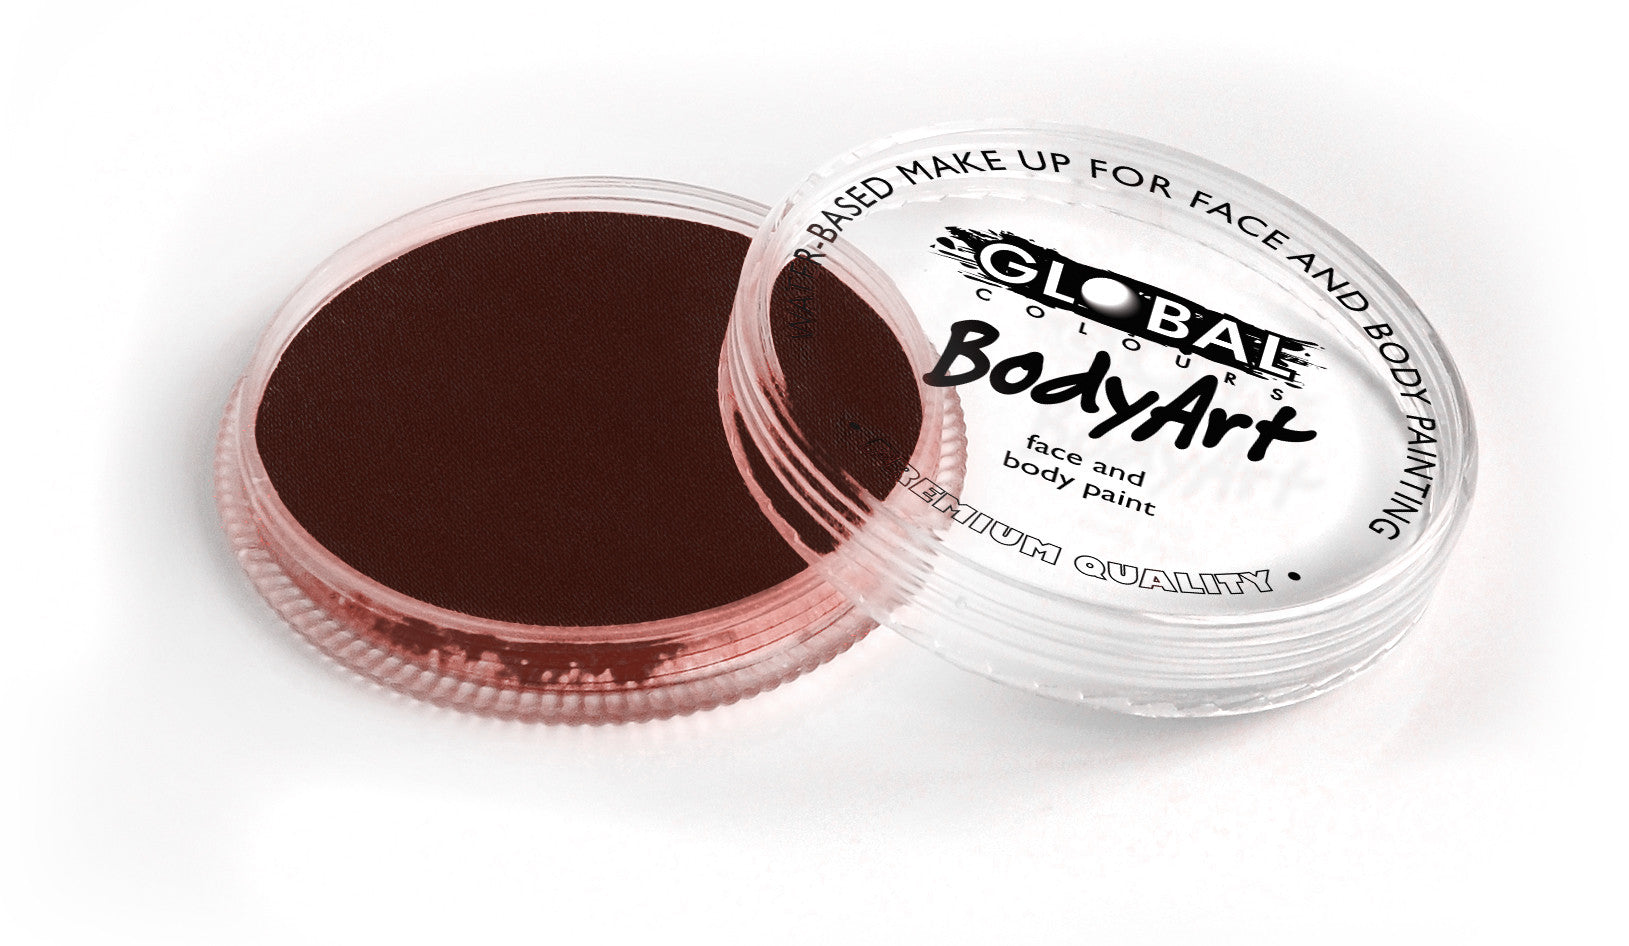 Global Body Art Face Paint - Deep Merlot 32g